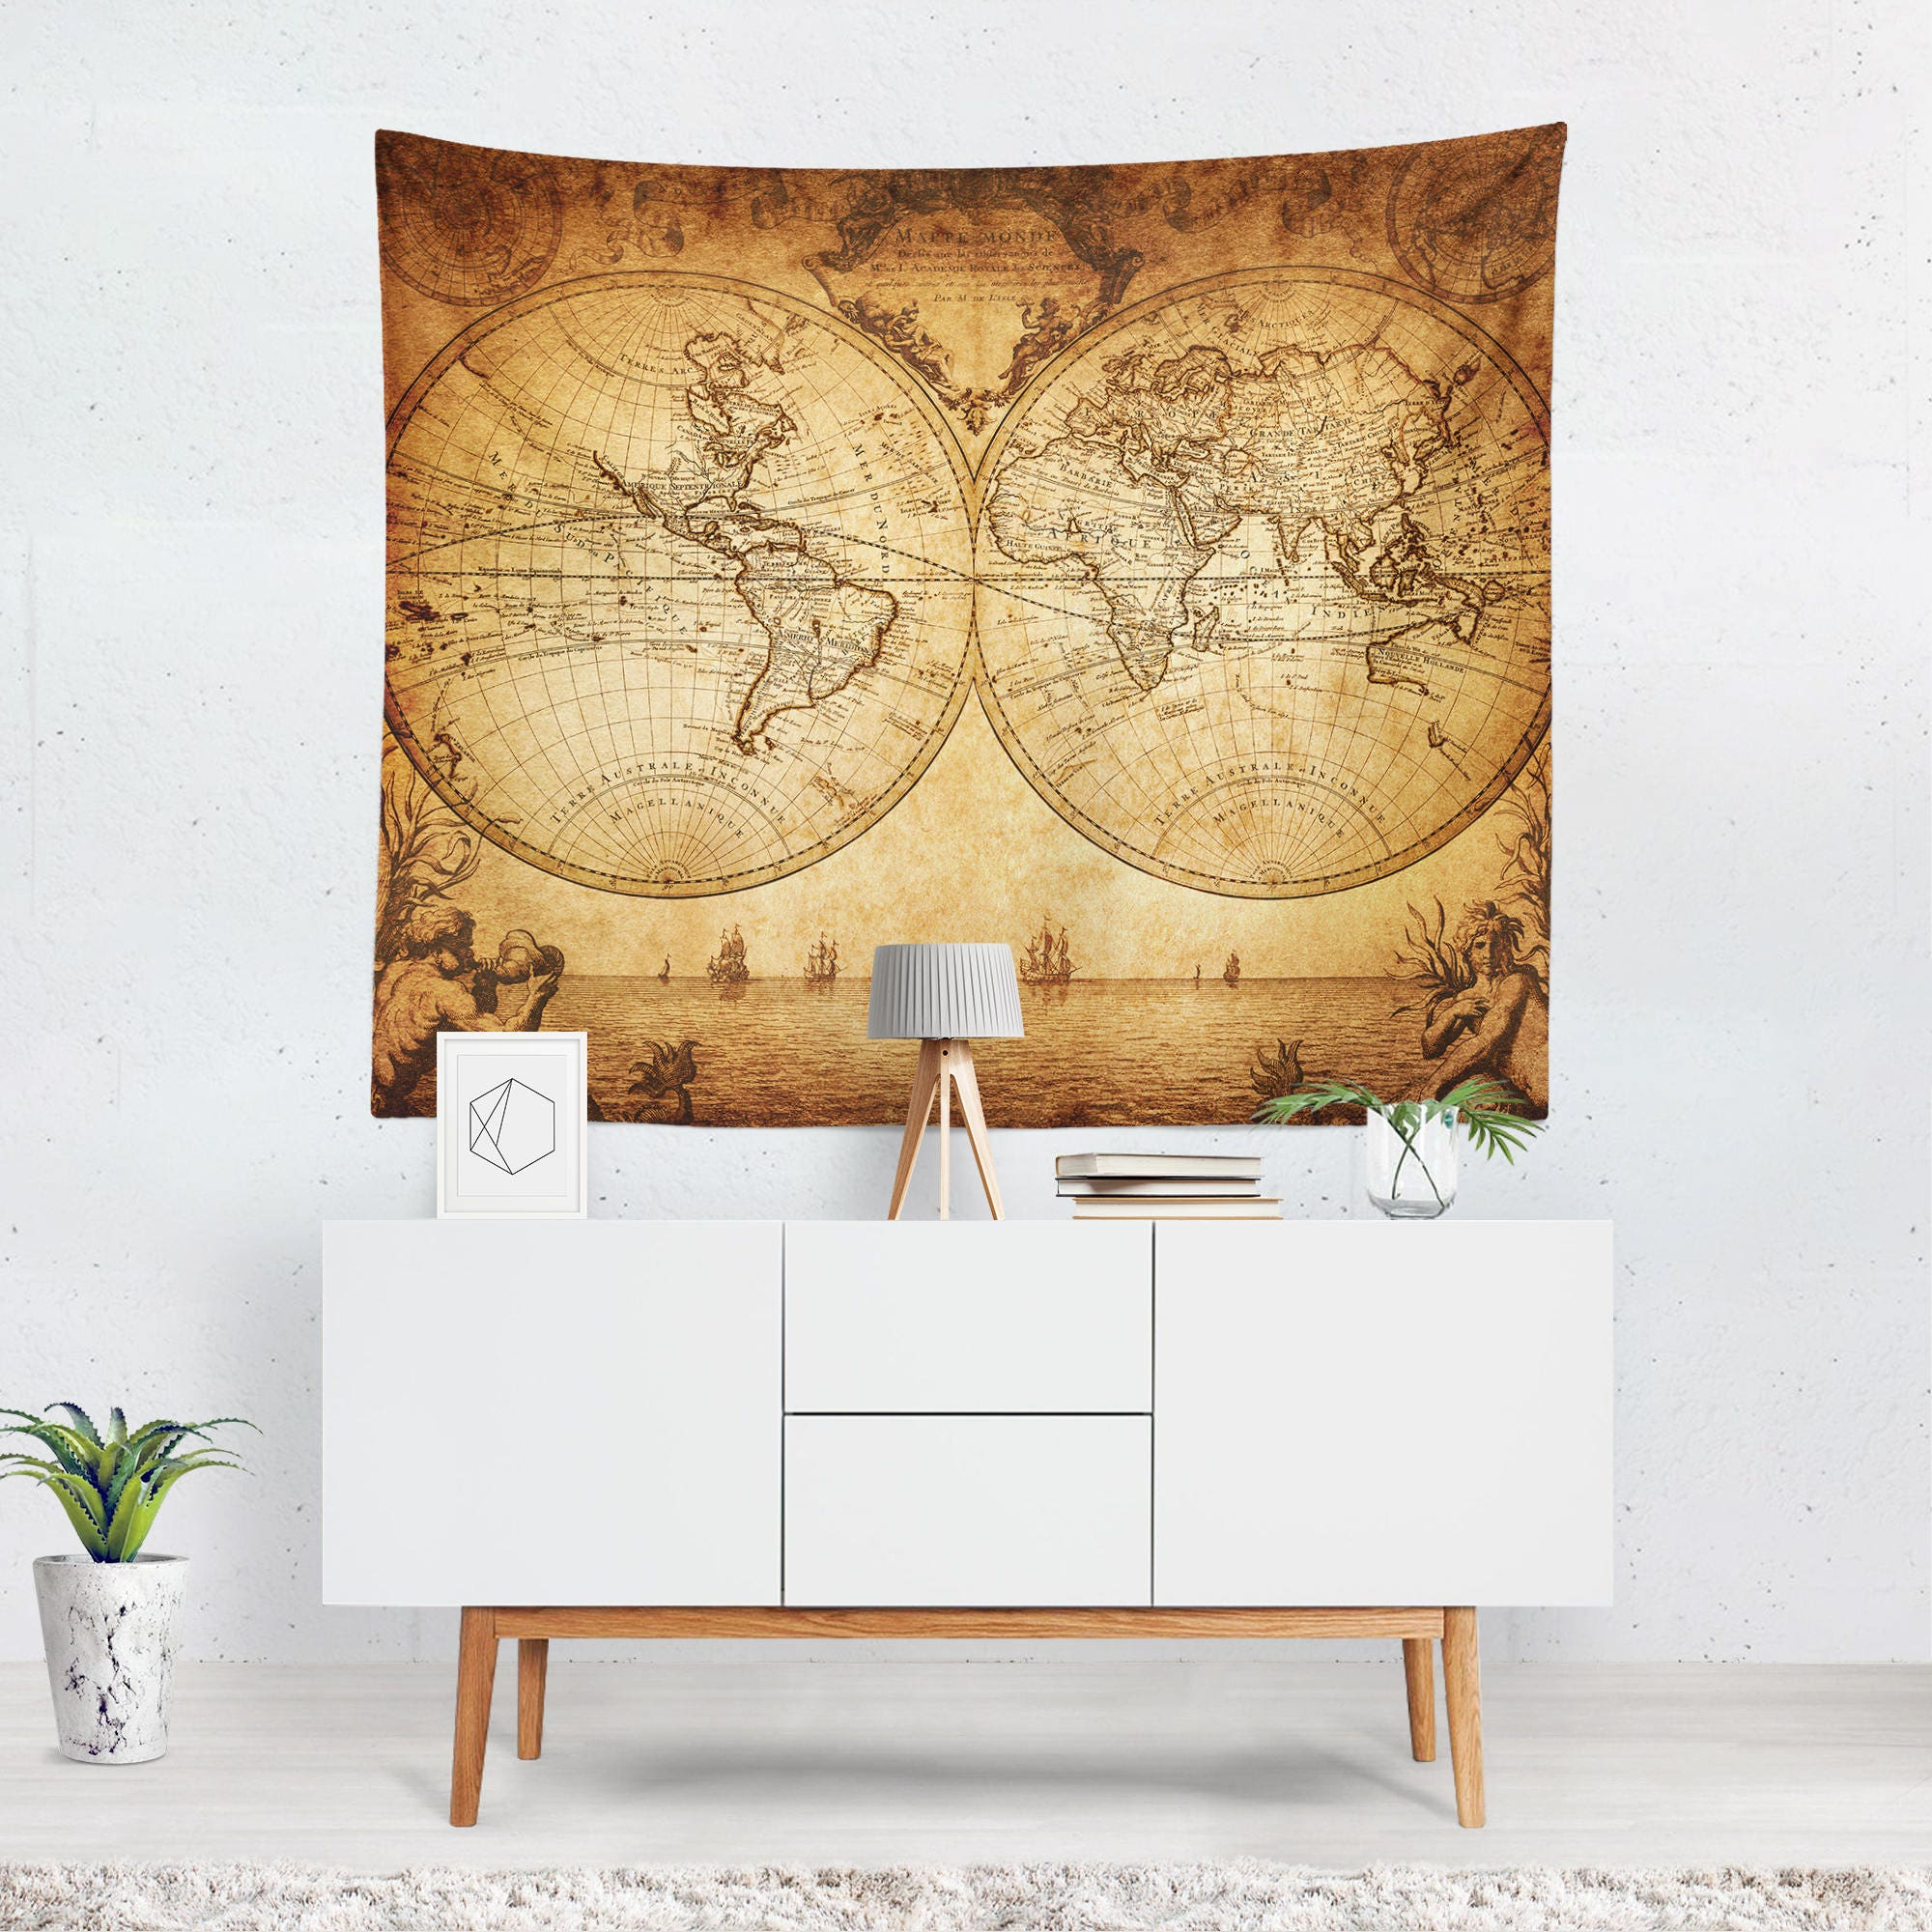 Vintage World Map Tapestry Vintage Map Wall Tapestry World | Etsy